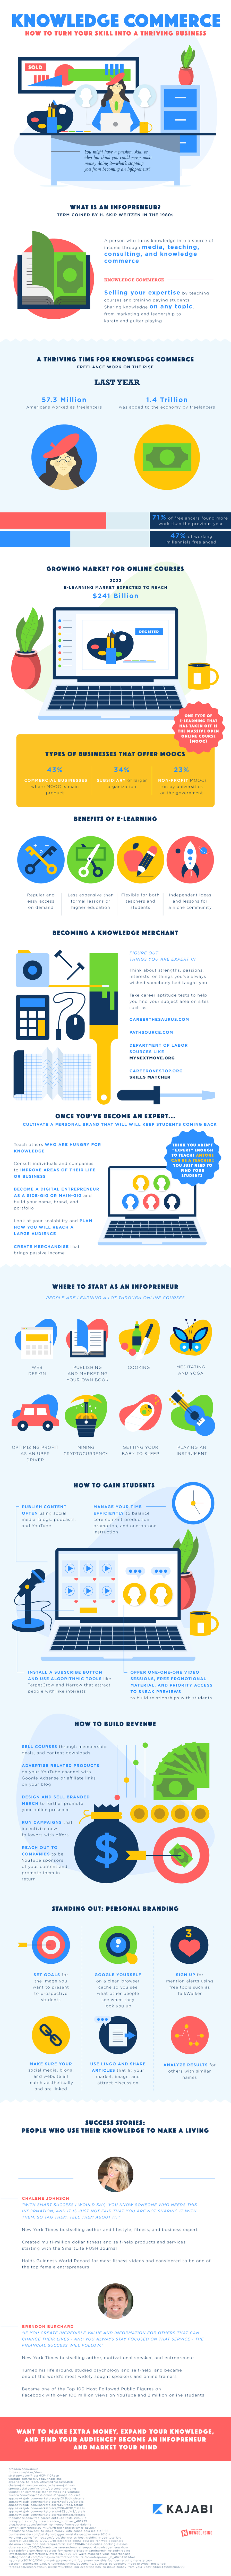 Becoming An Infopreneur [Infographic] 1